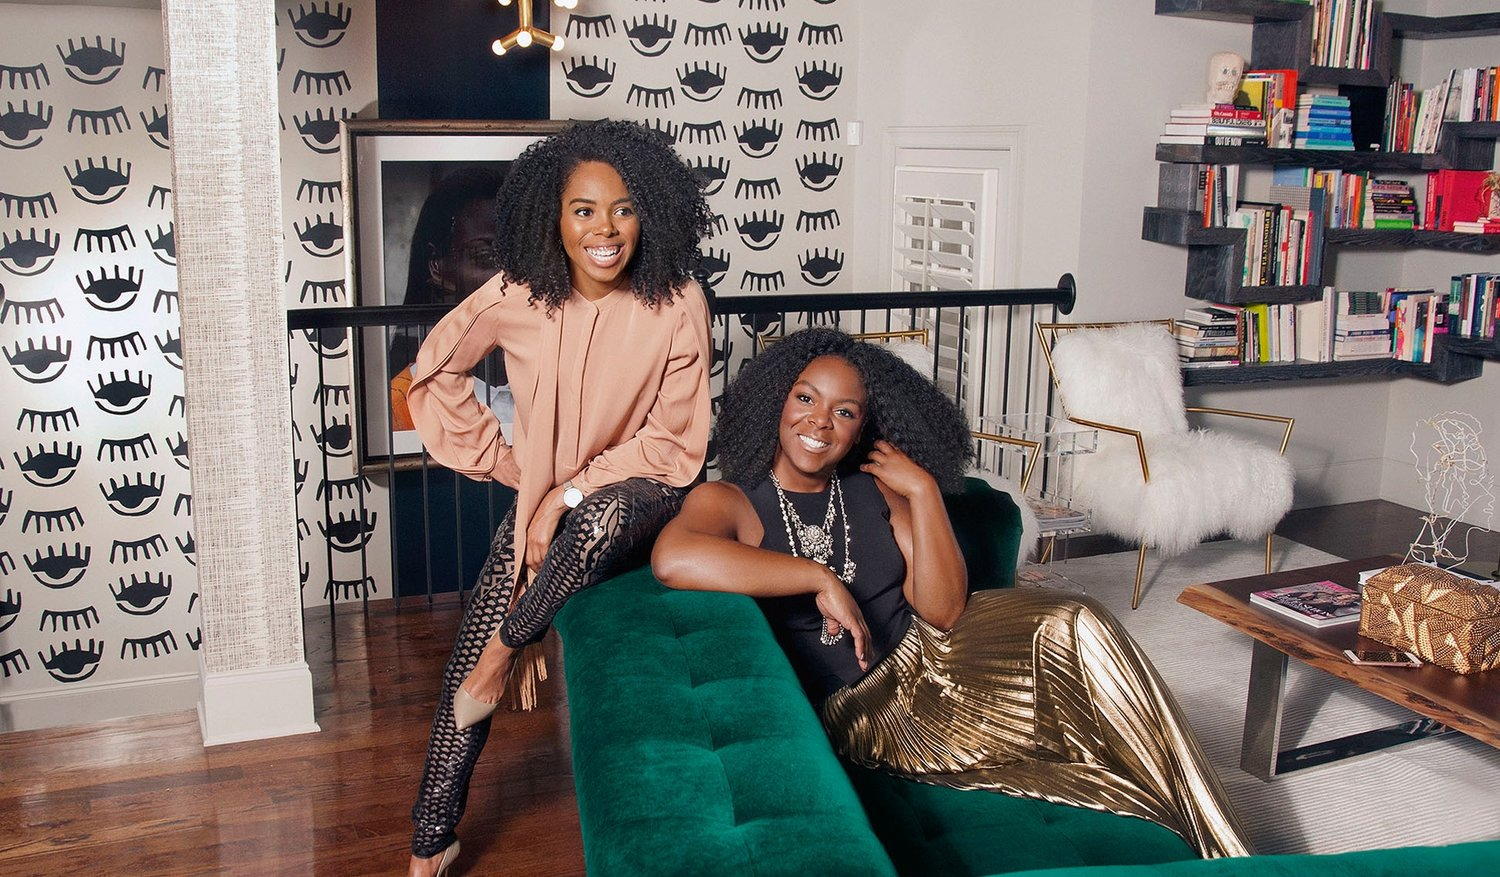 Atlanta's Favorite Interior Designers: Tavia Forbes and Monet Masters